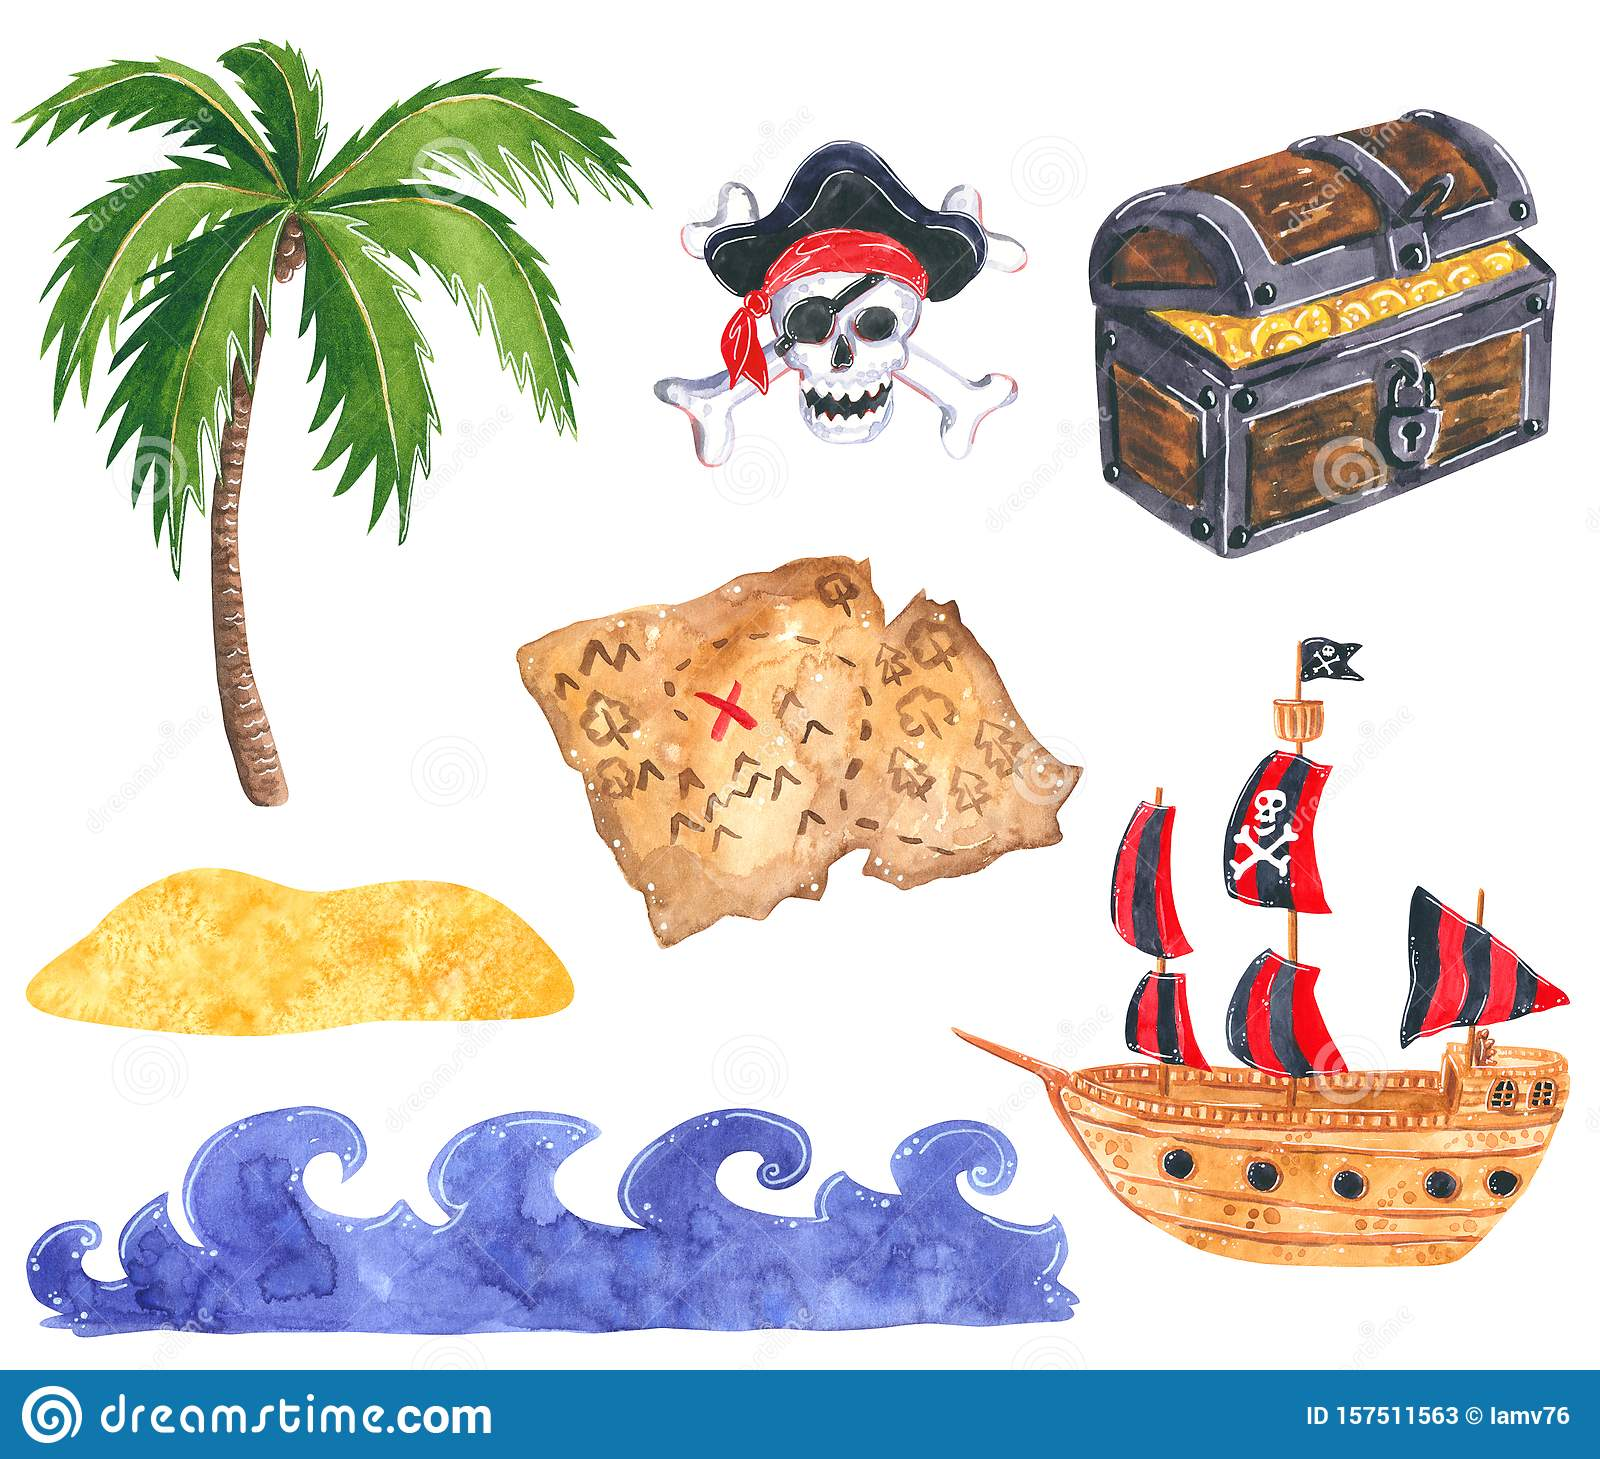 Set Of Pirate Clipart Pirate Ship Treasure Chest With Gold Coins Treasure Map Ocean Waves Stock Illustration Illustration Of Colorful Drawing 157511563